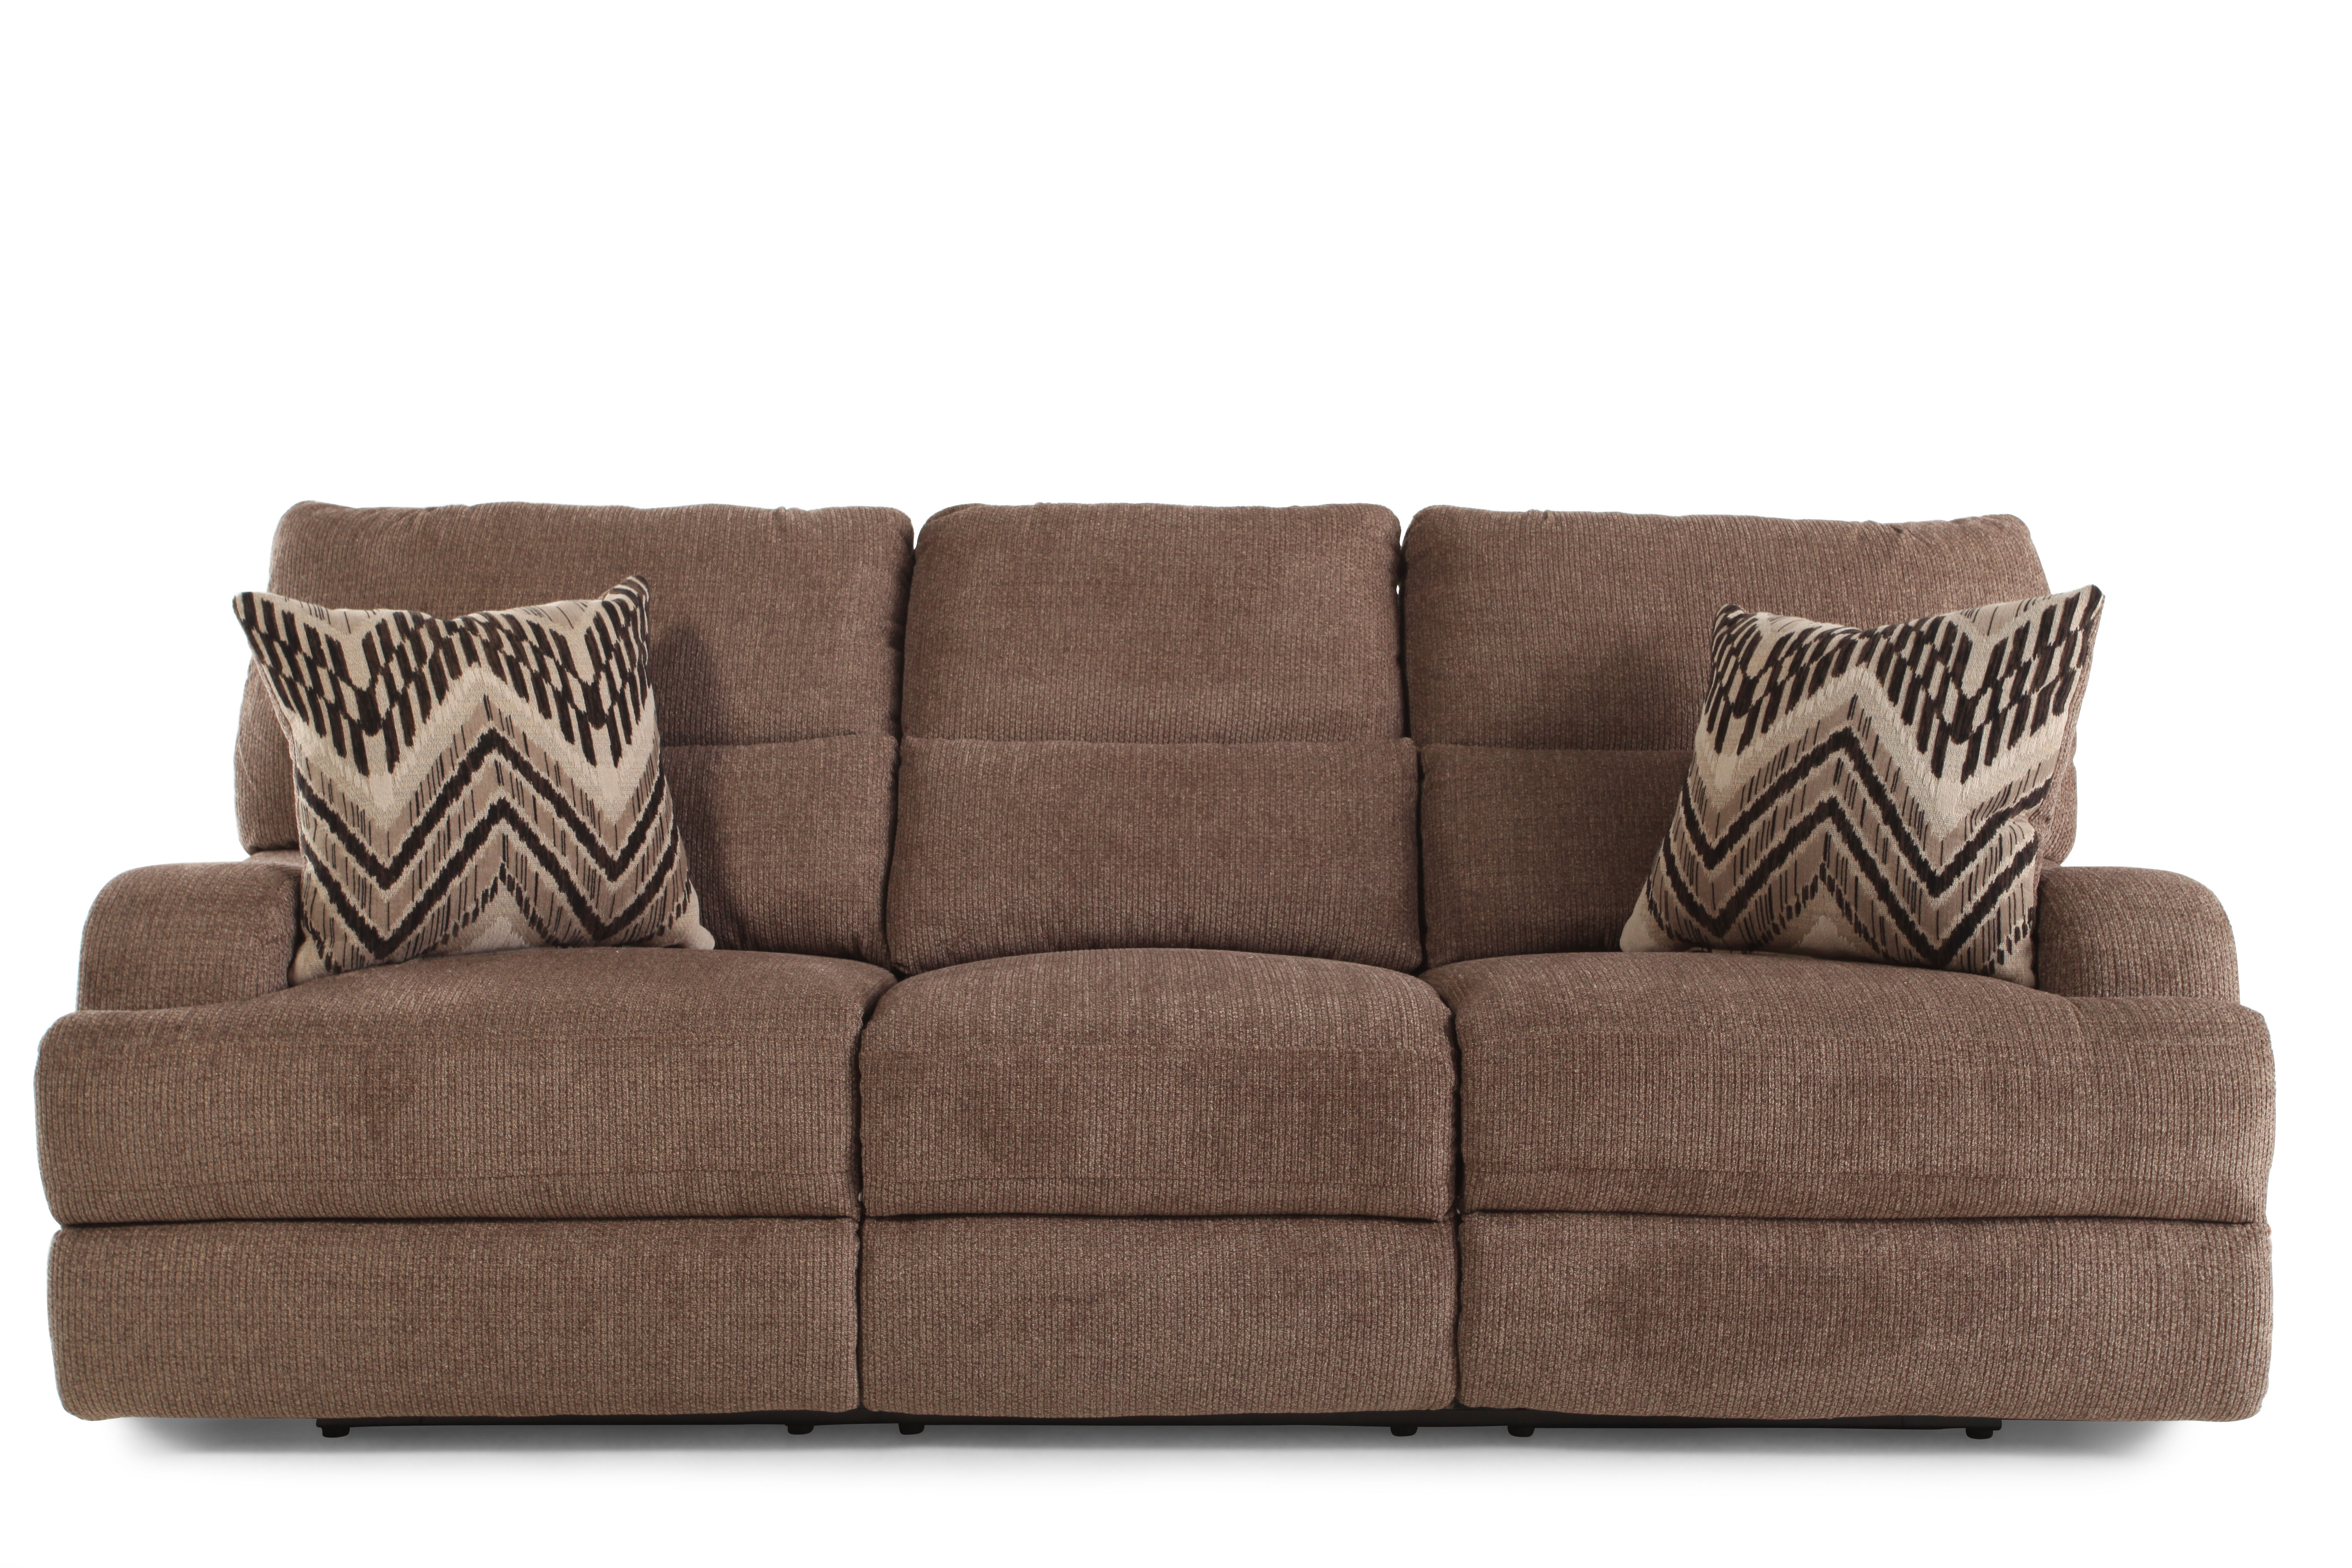 Mathis Brothers Sofas Traditional Queen Sleeper Sofa In